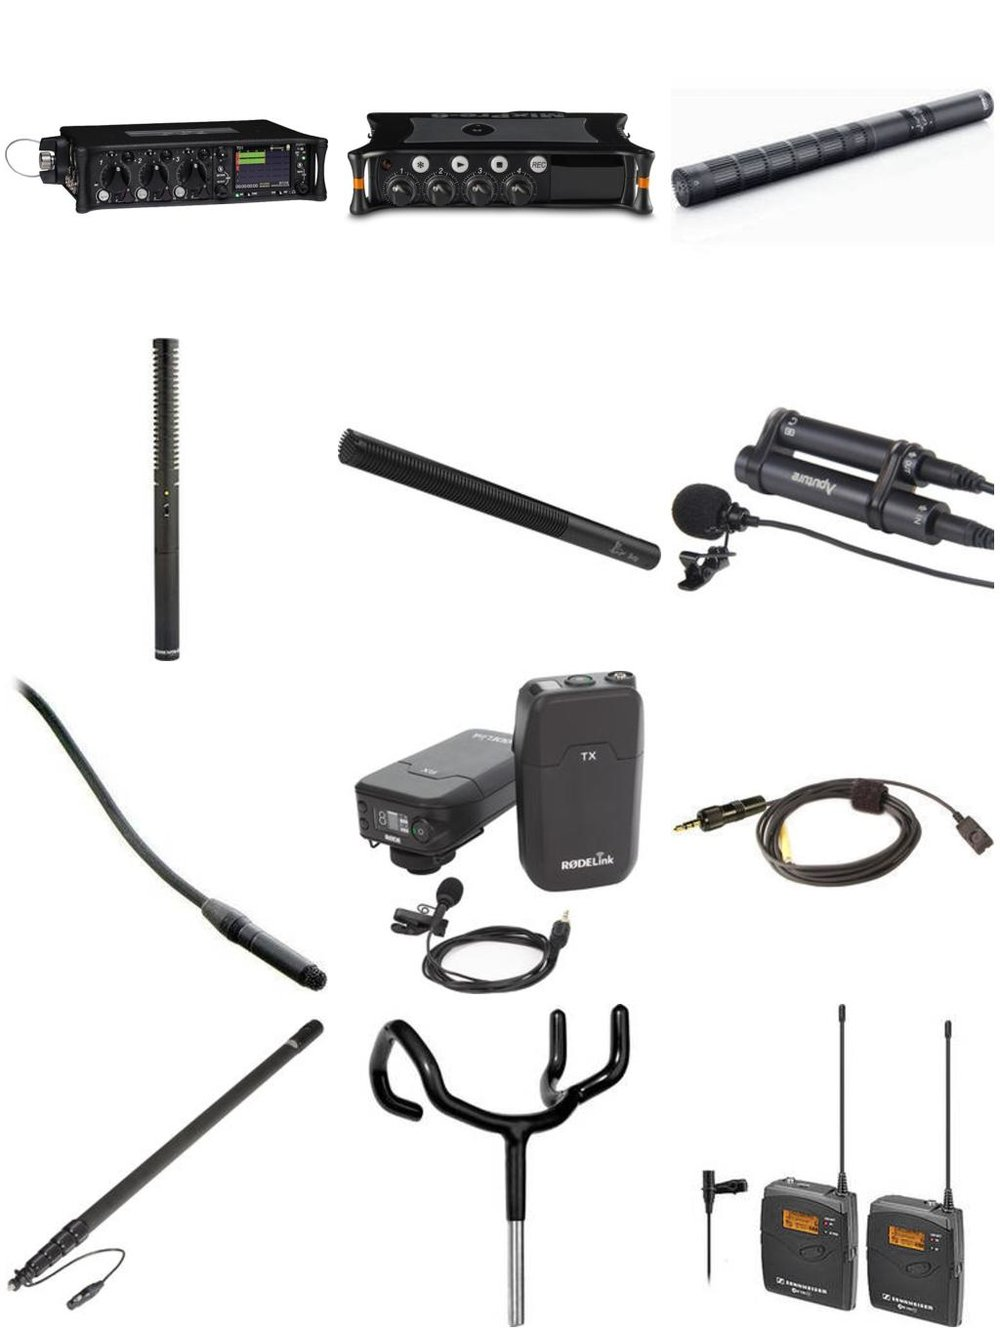 Sound Kit - See my sound kit over at kit.com